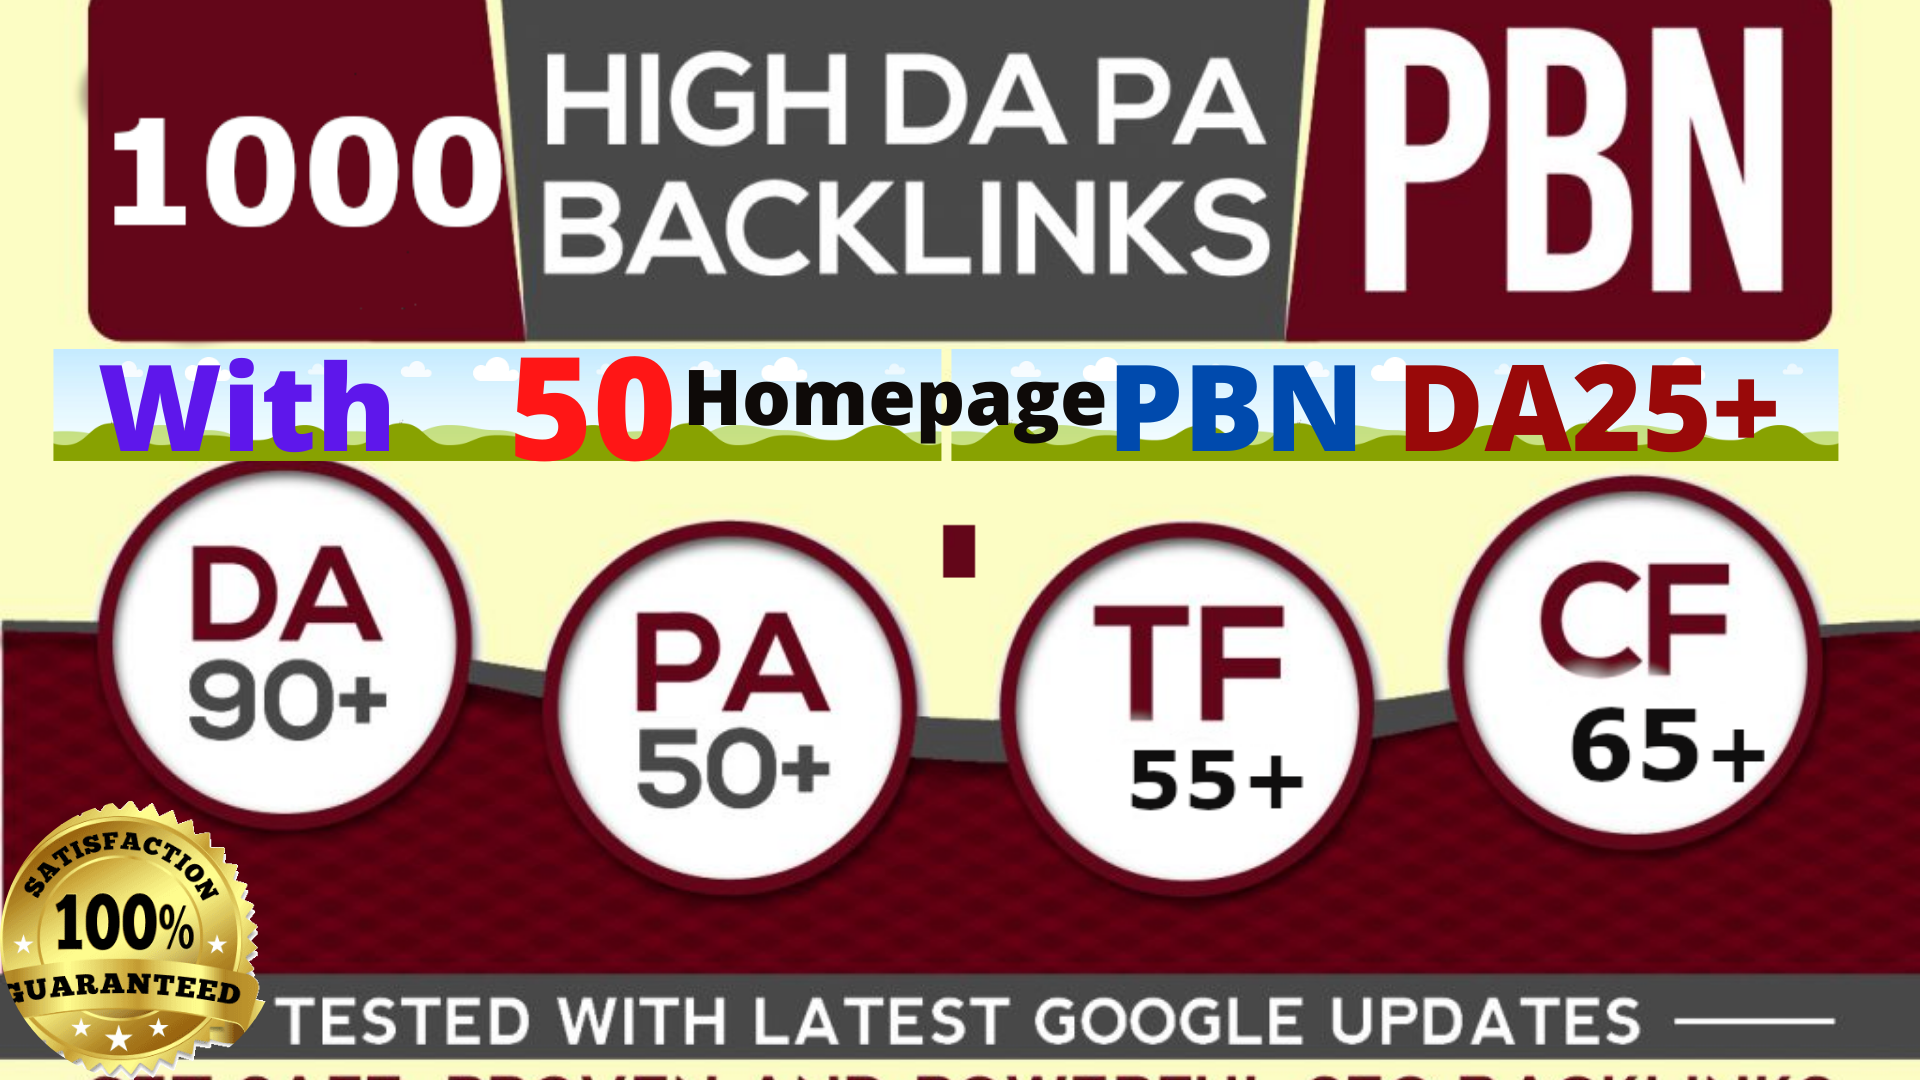 wow offer Homepage 50 PBN DA25+1000+strong+5000 links with HIGH DA/PA/CF/TF exclusive Backlink fast